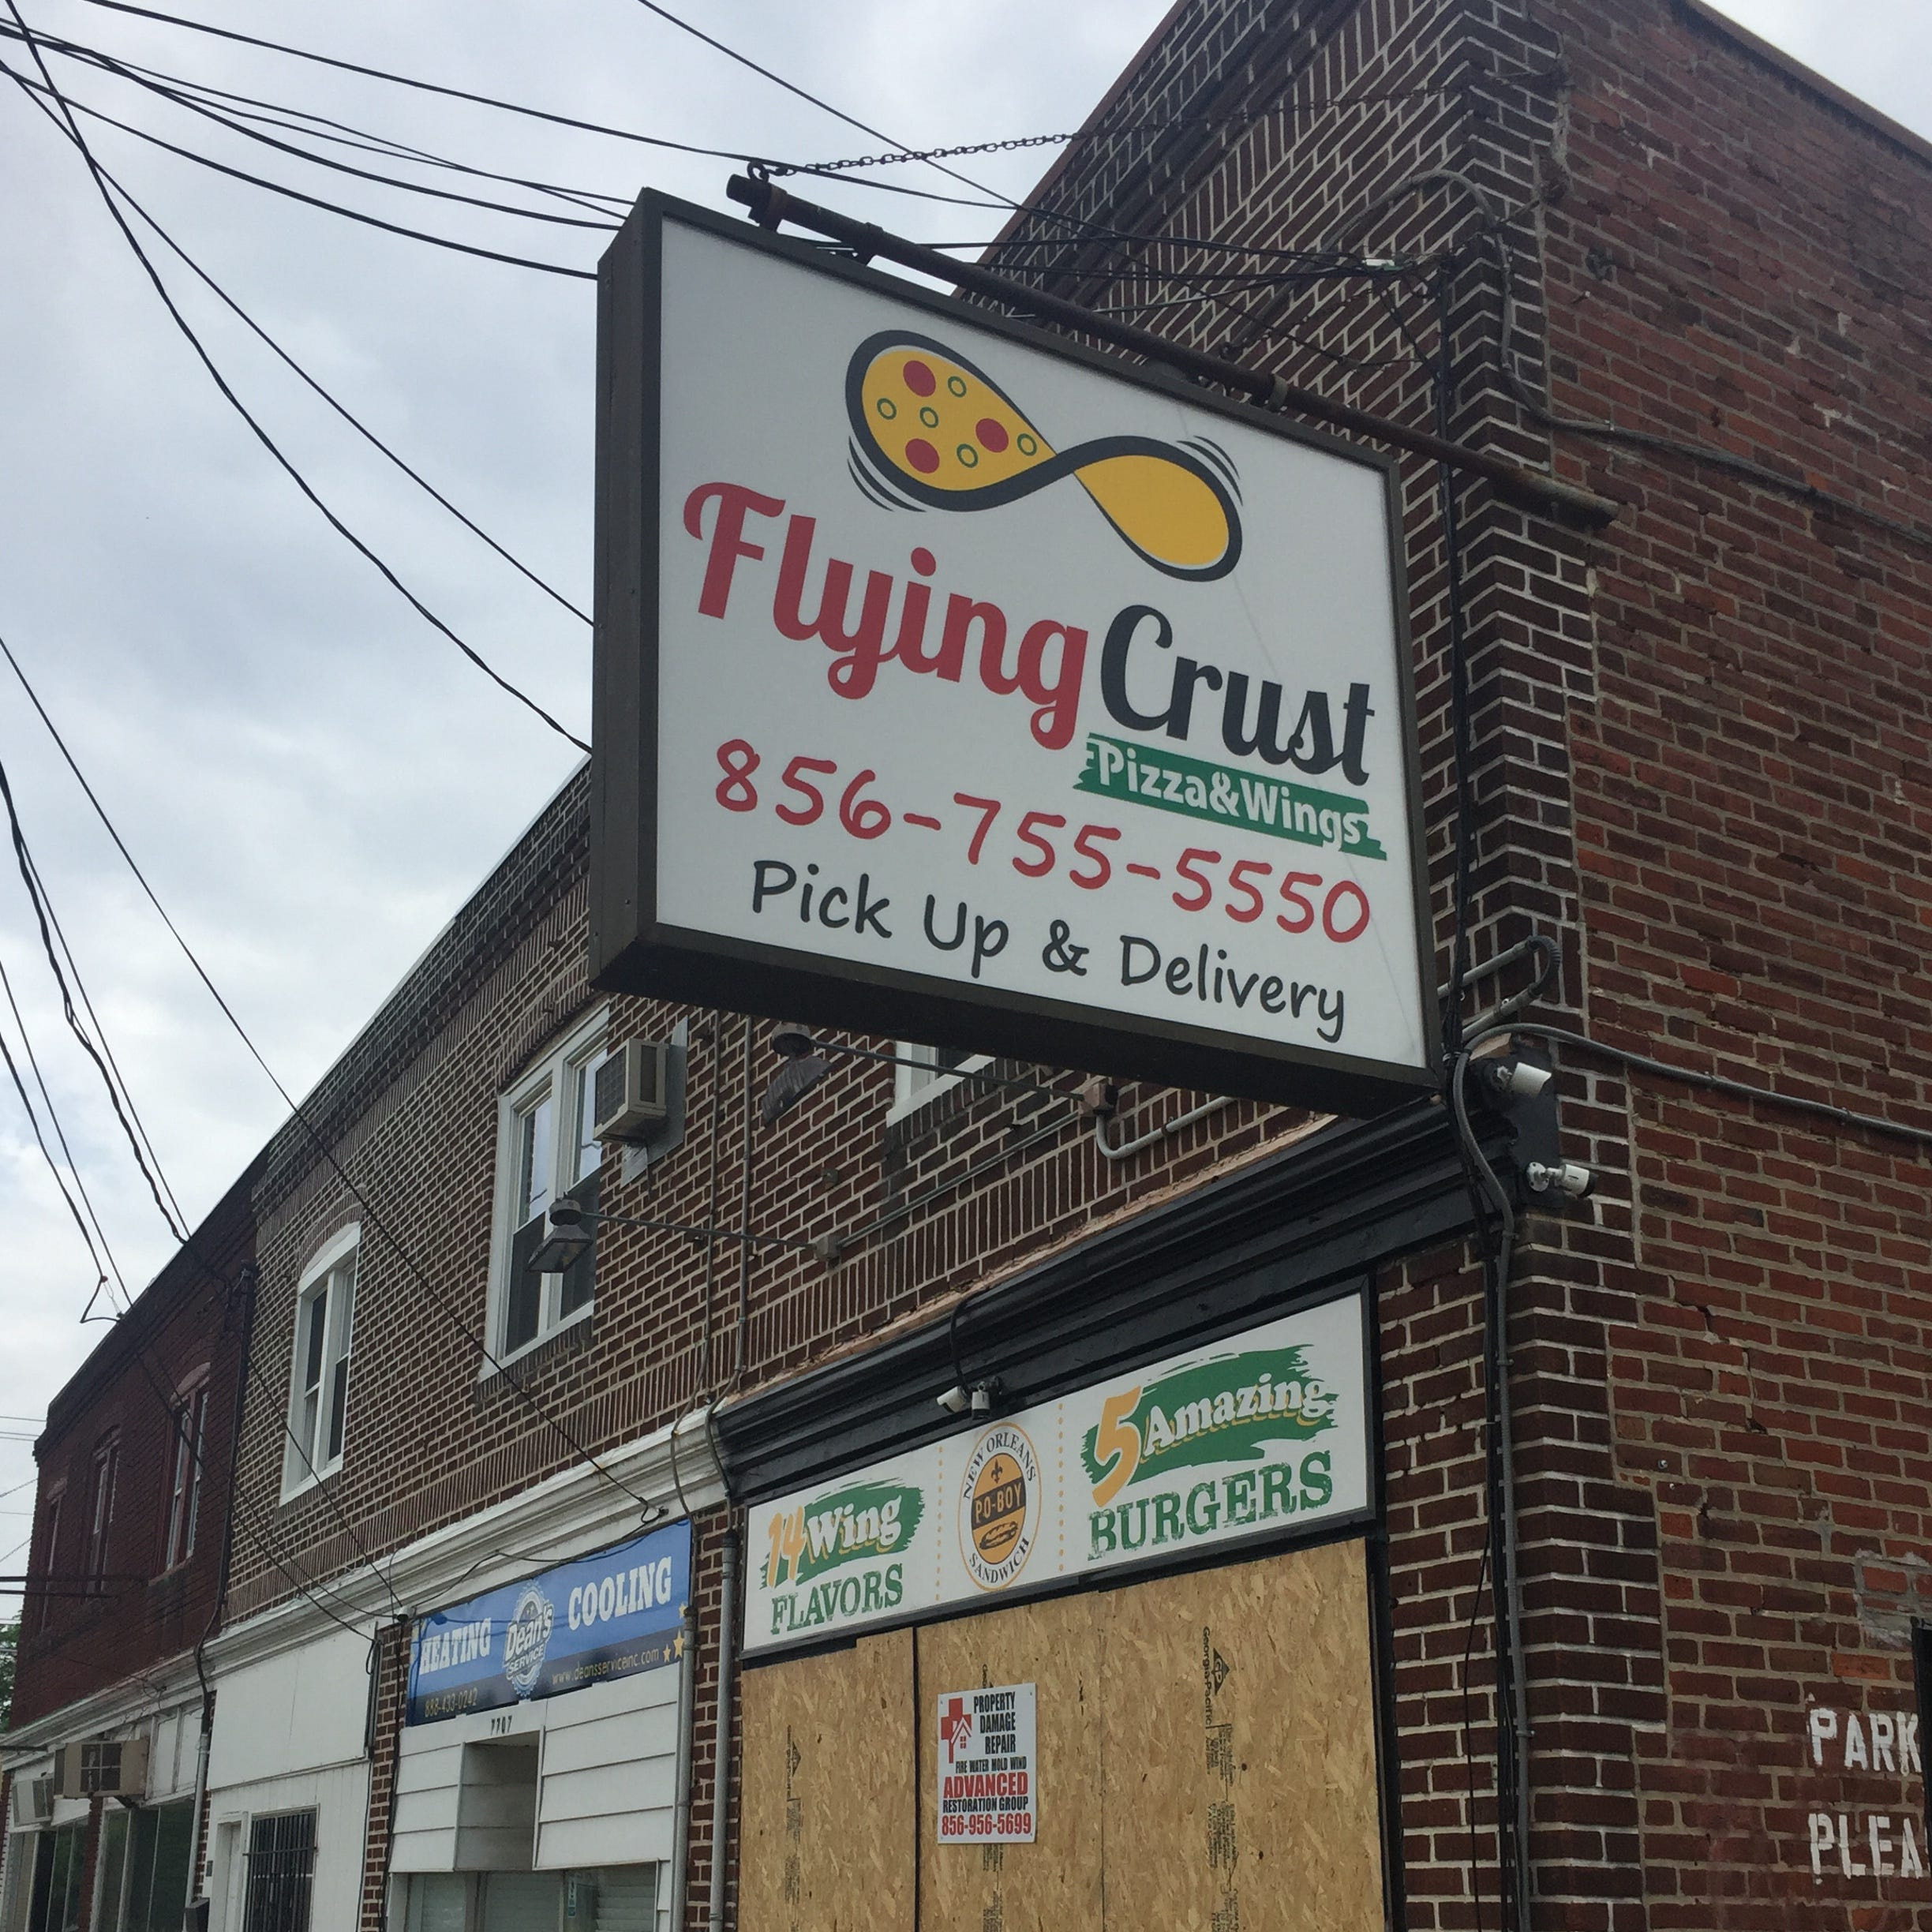 NJ teacher charged with DUI had more twice legal limit, crashed into pizza and wings shop